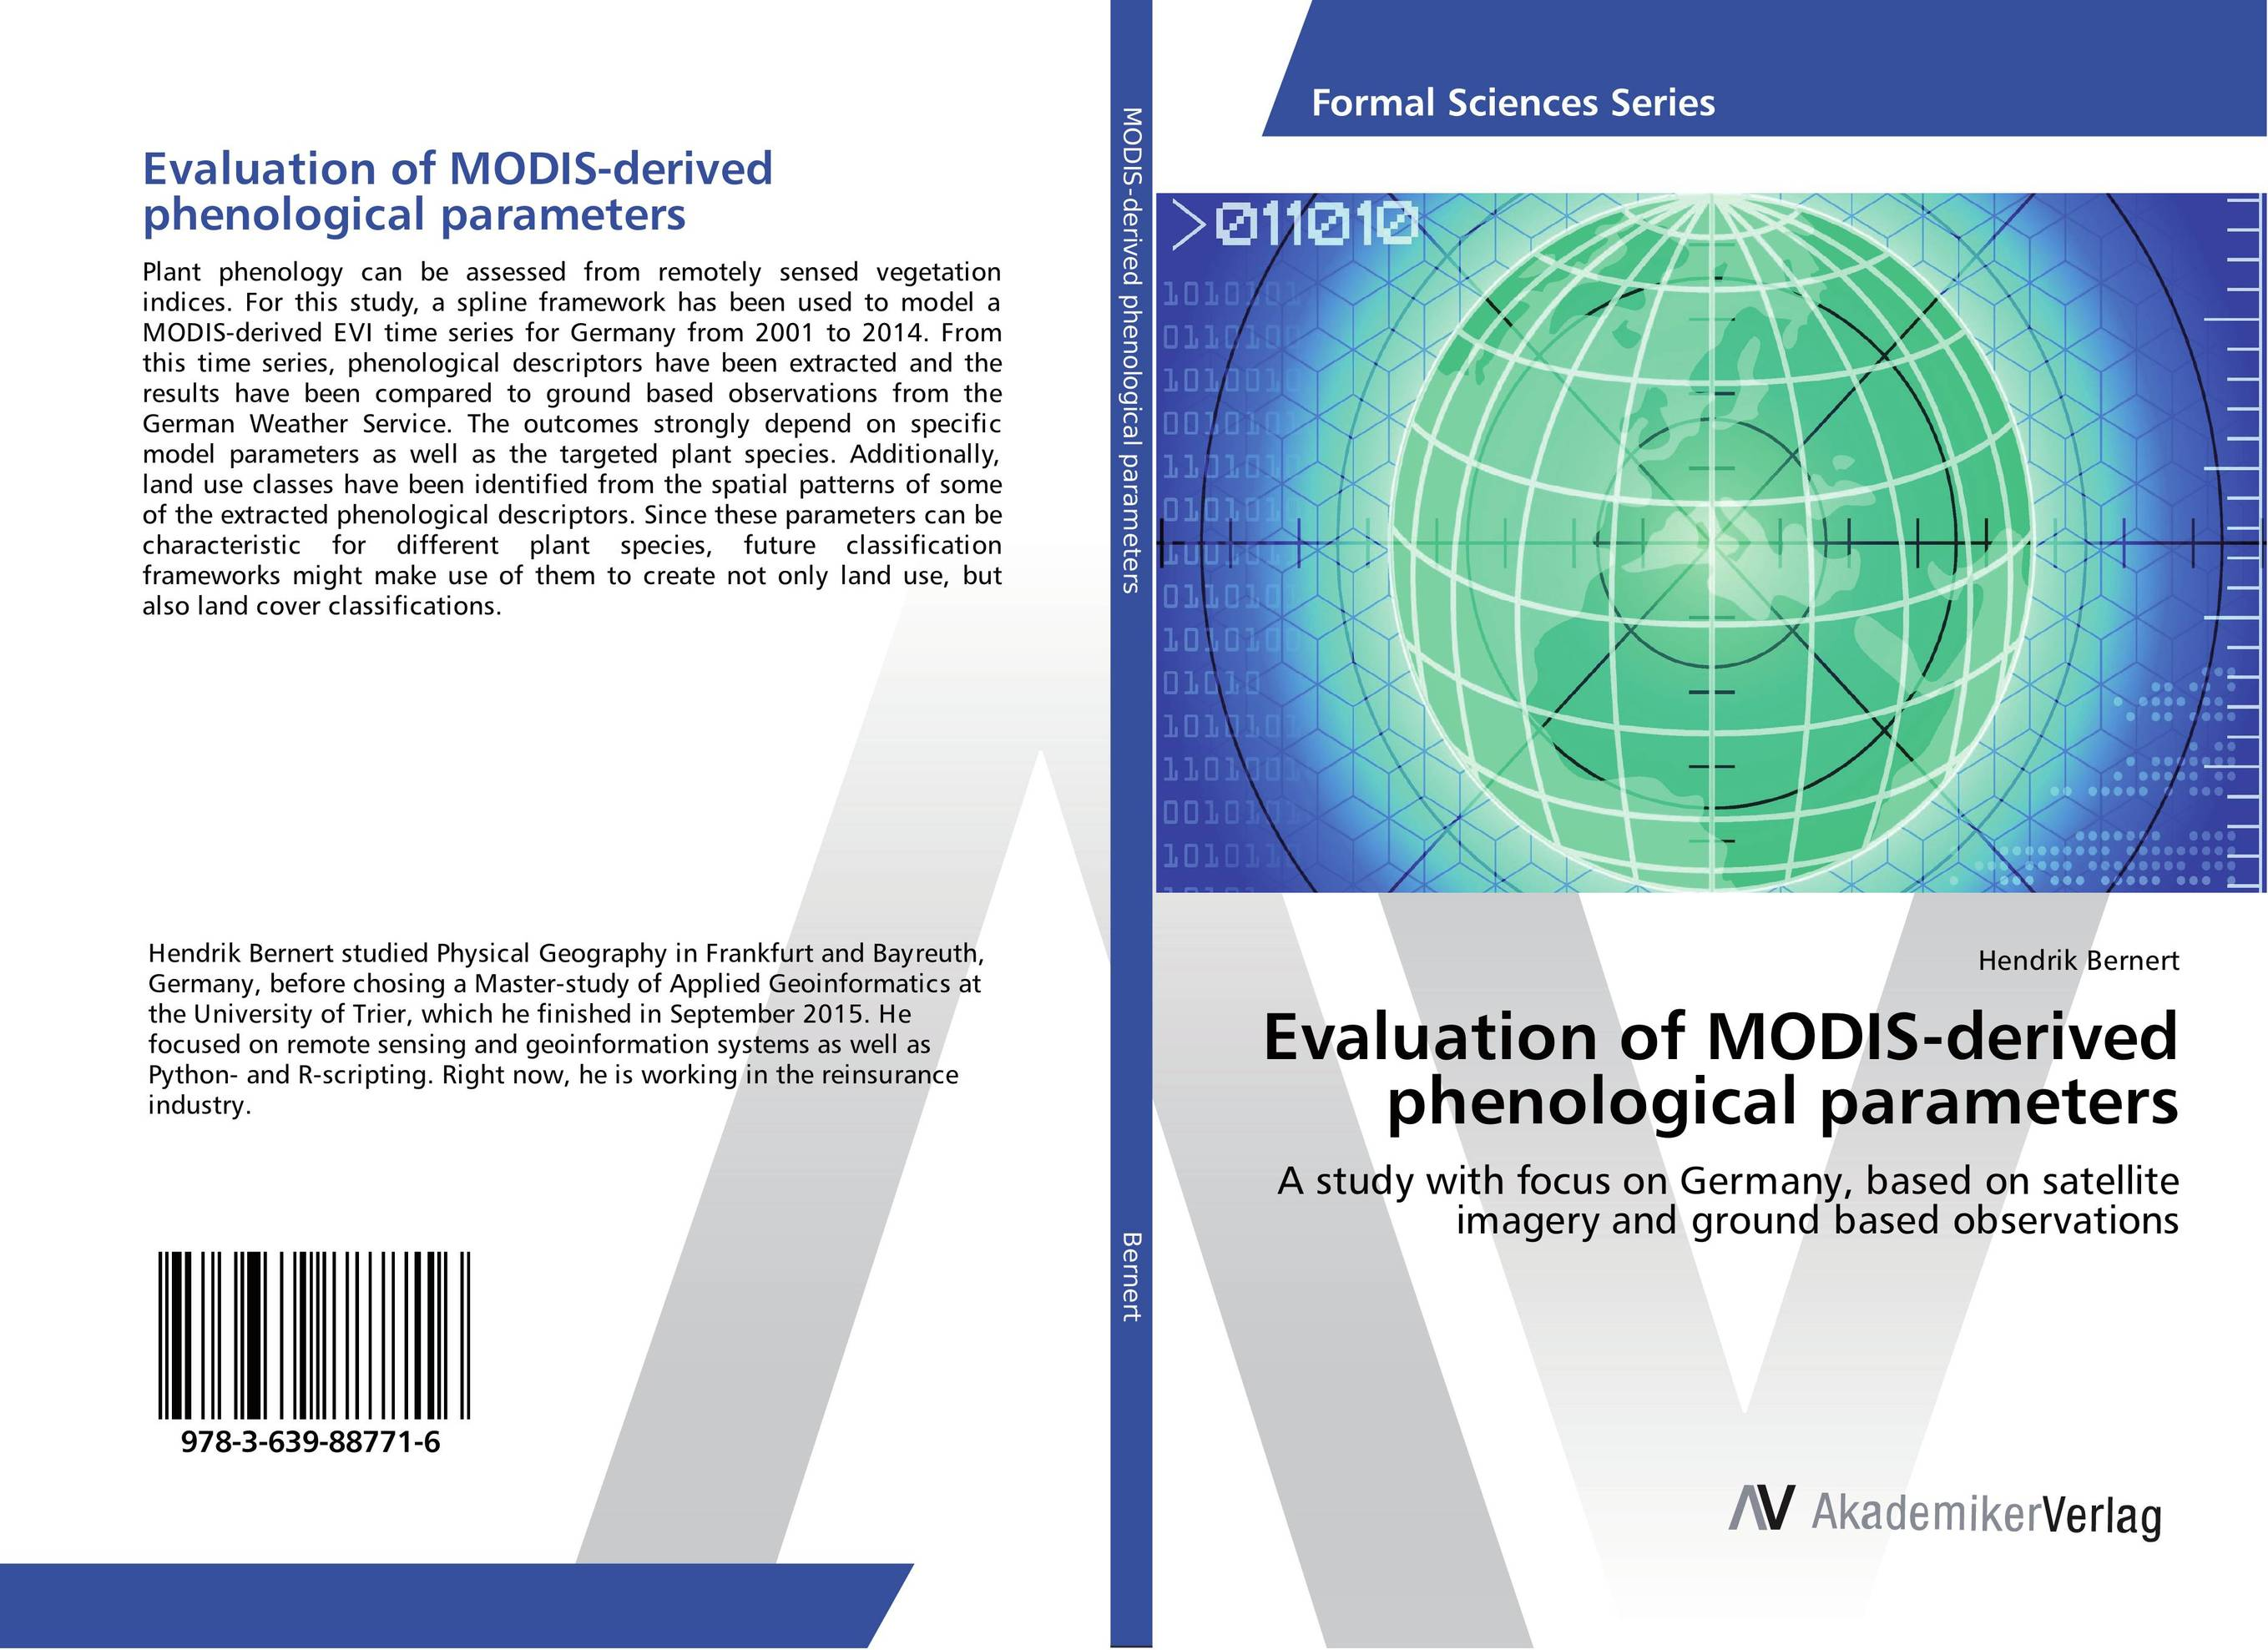 Evaluation of MODIS-derived phenological parameters